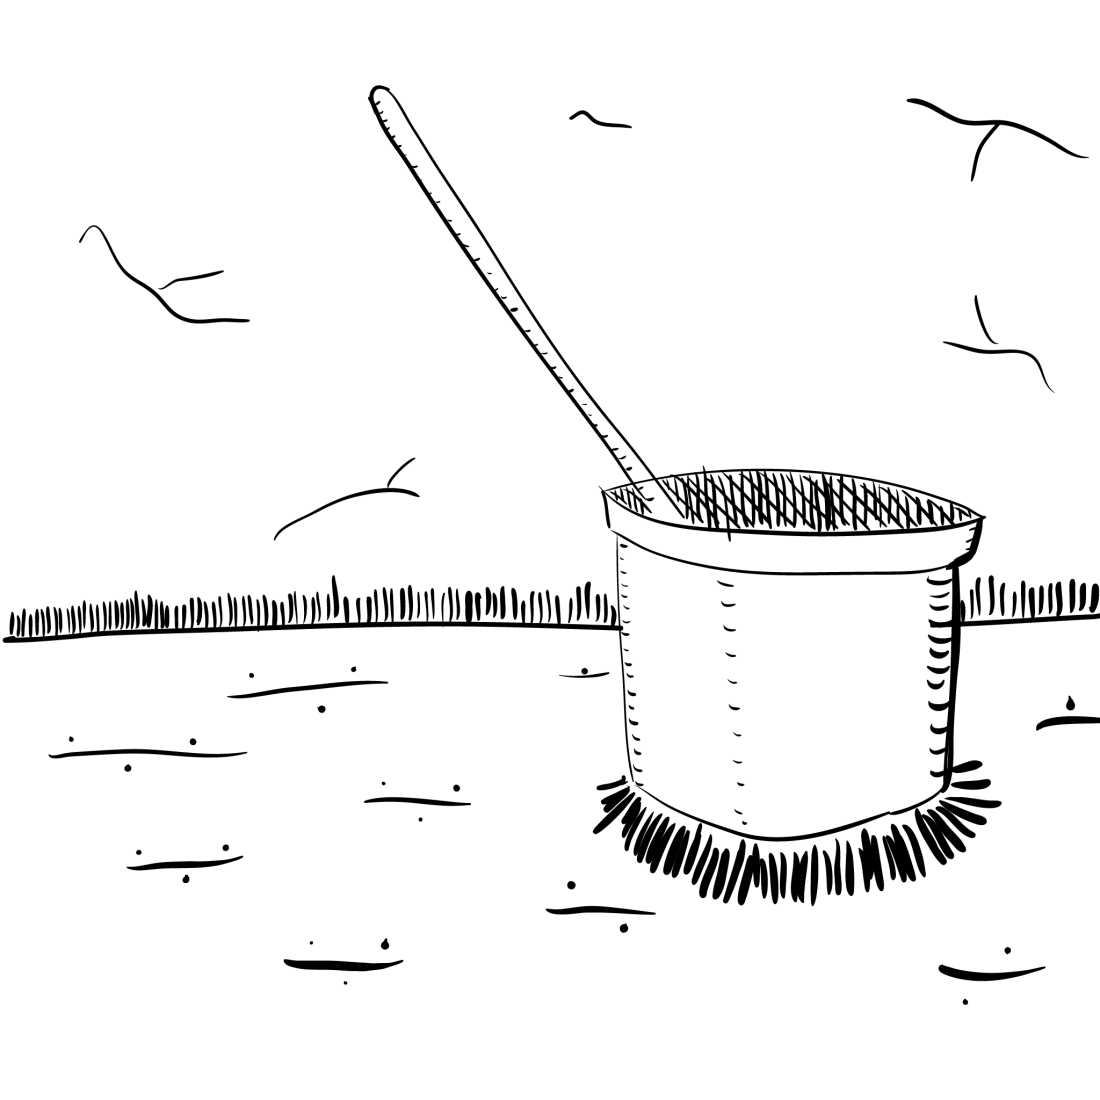 crude rendering of a mop bucket, inert and lifeless, as they often are